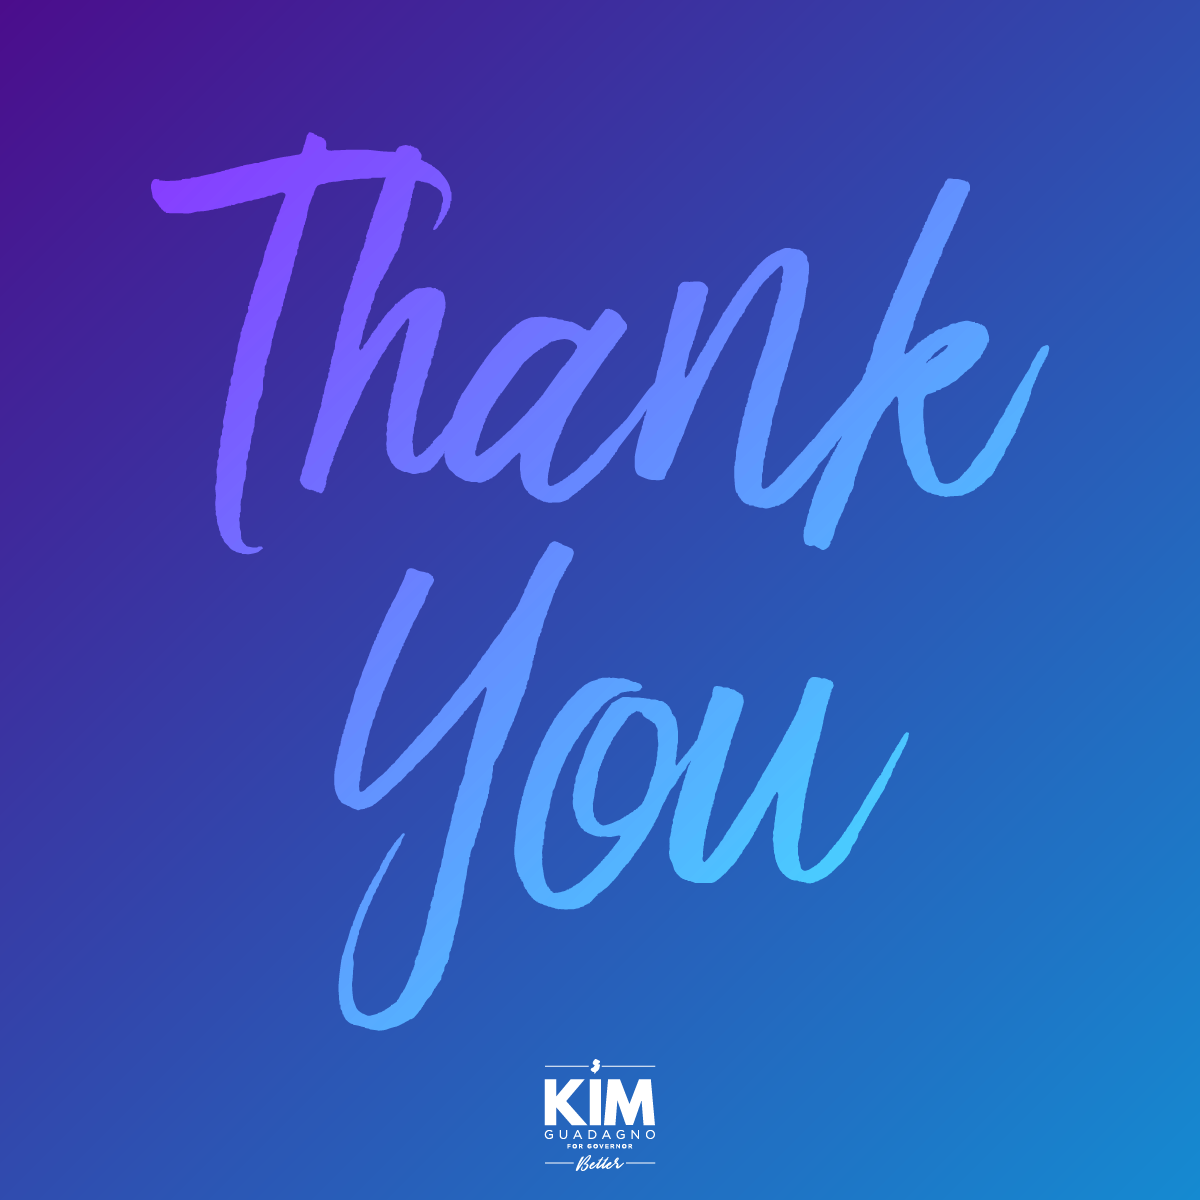 06-06-17_KimforNJ_Thank_You-01.png